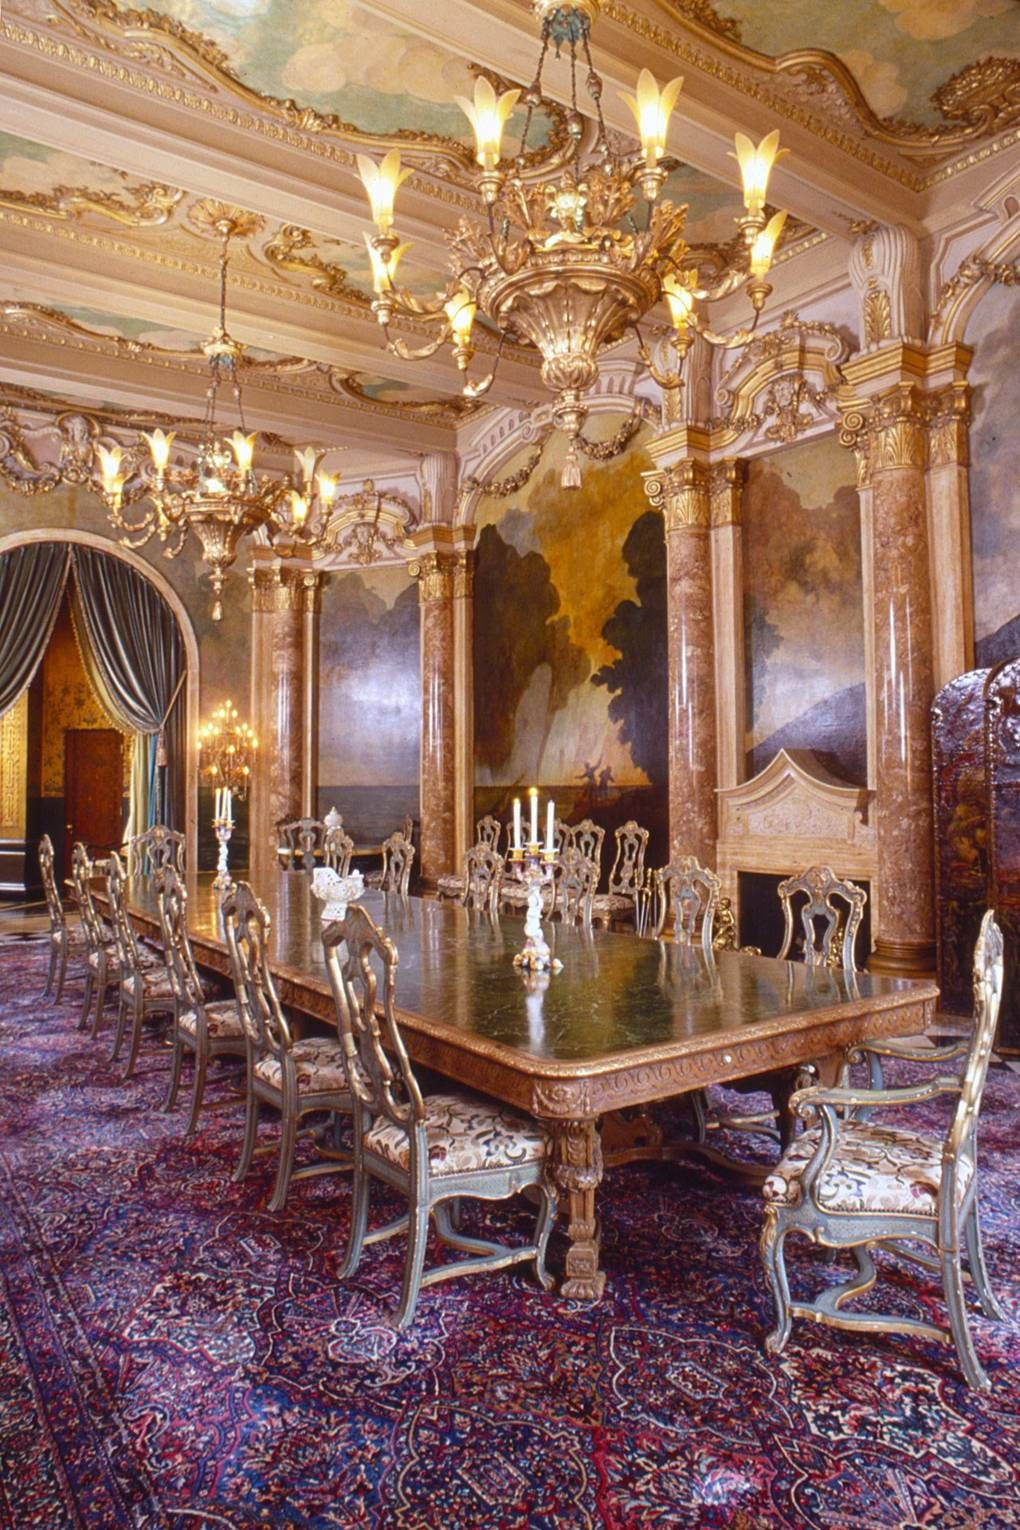 Image result for mar a lago dining room Trump home